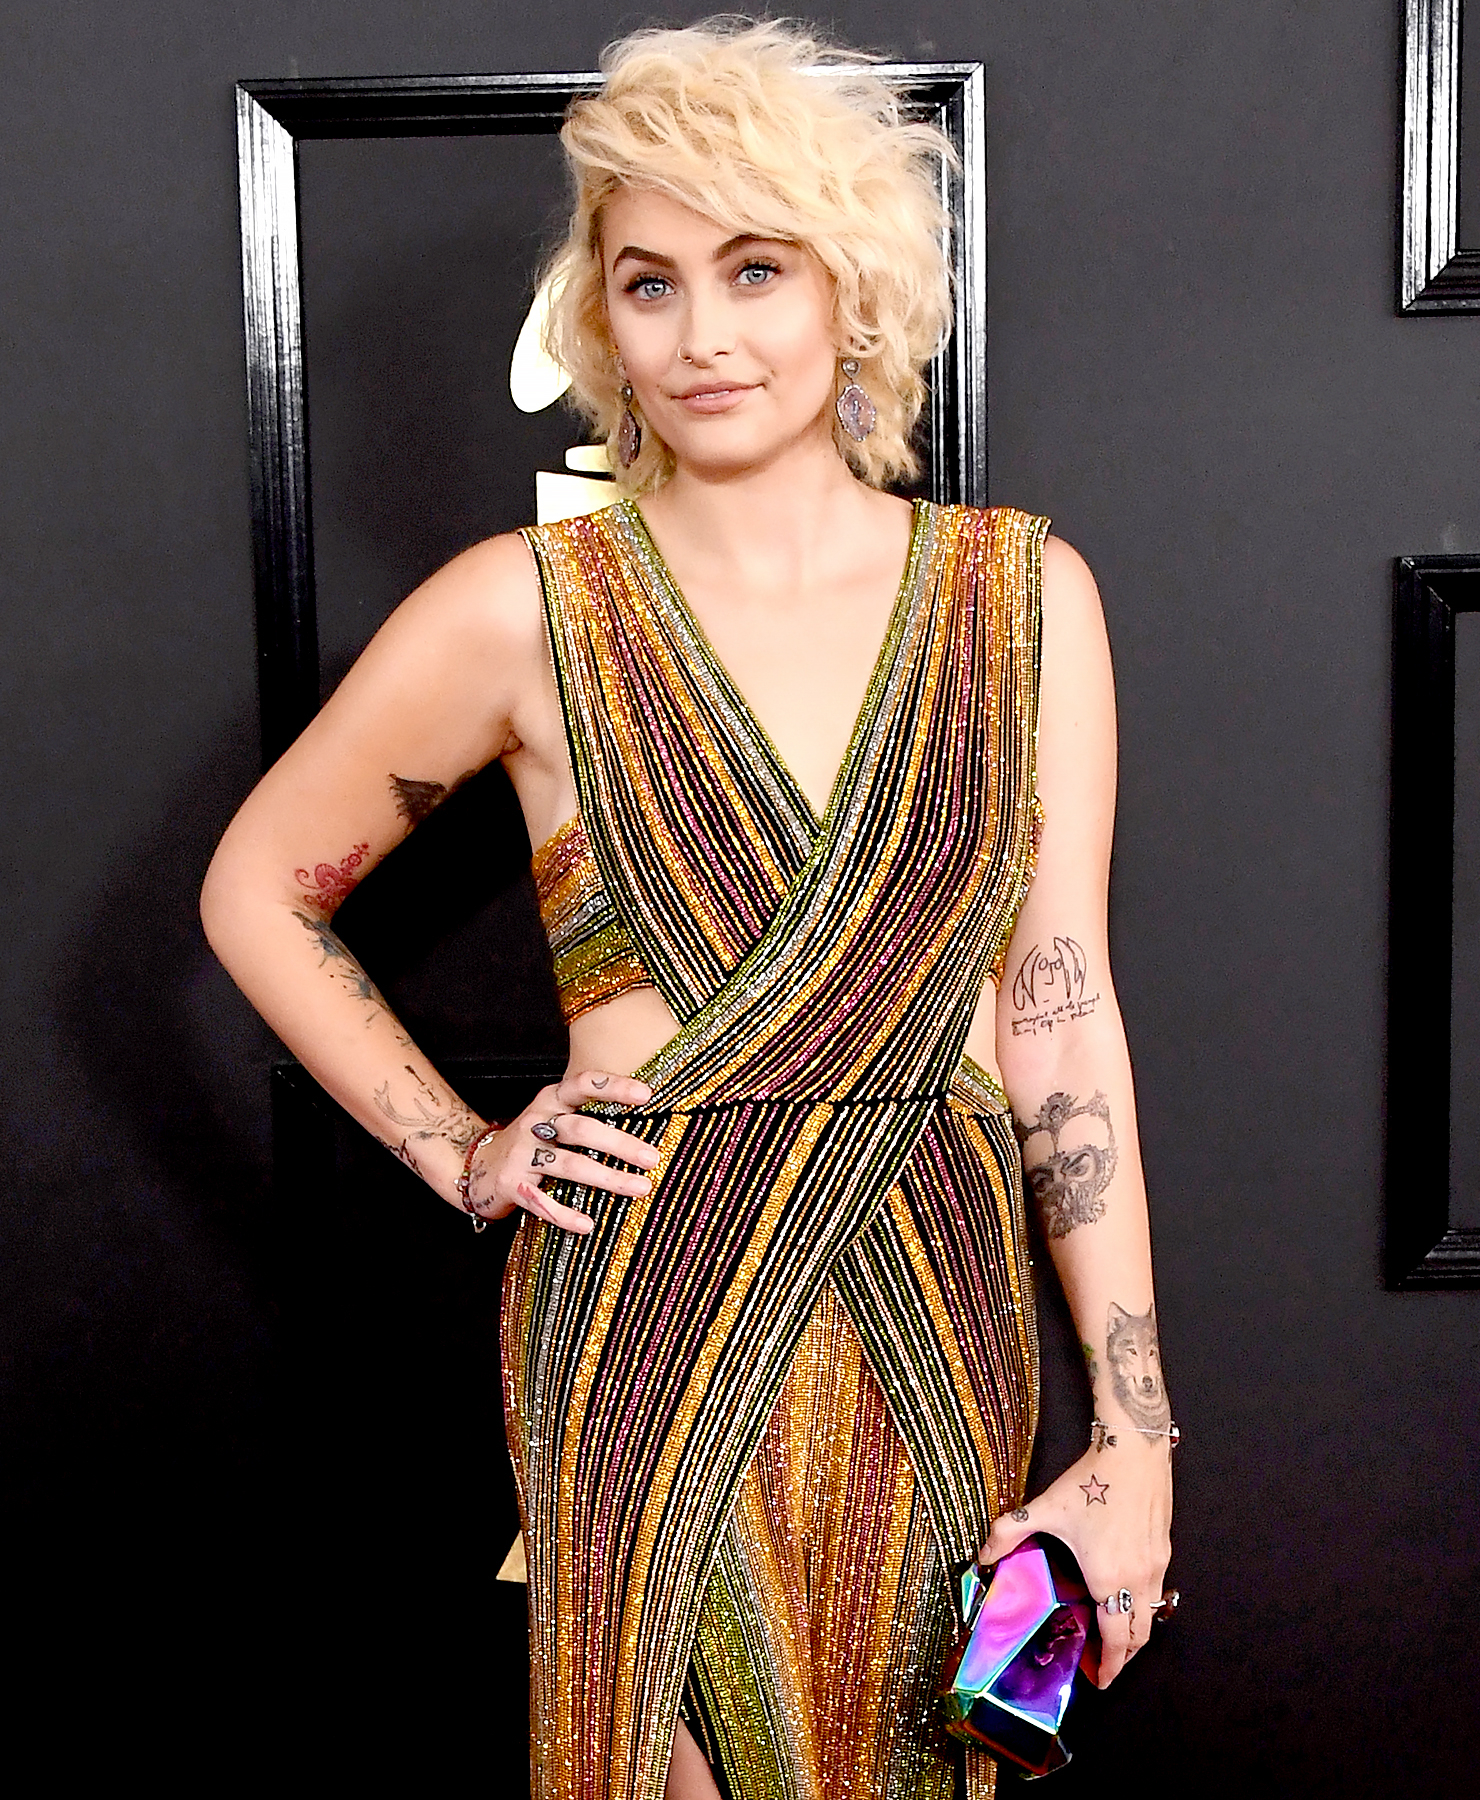 Paris Jackson attends The 59th GRAMMY Awards at STAPLES Center on February 12, 2017 in Los Angeles, California.